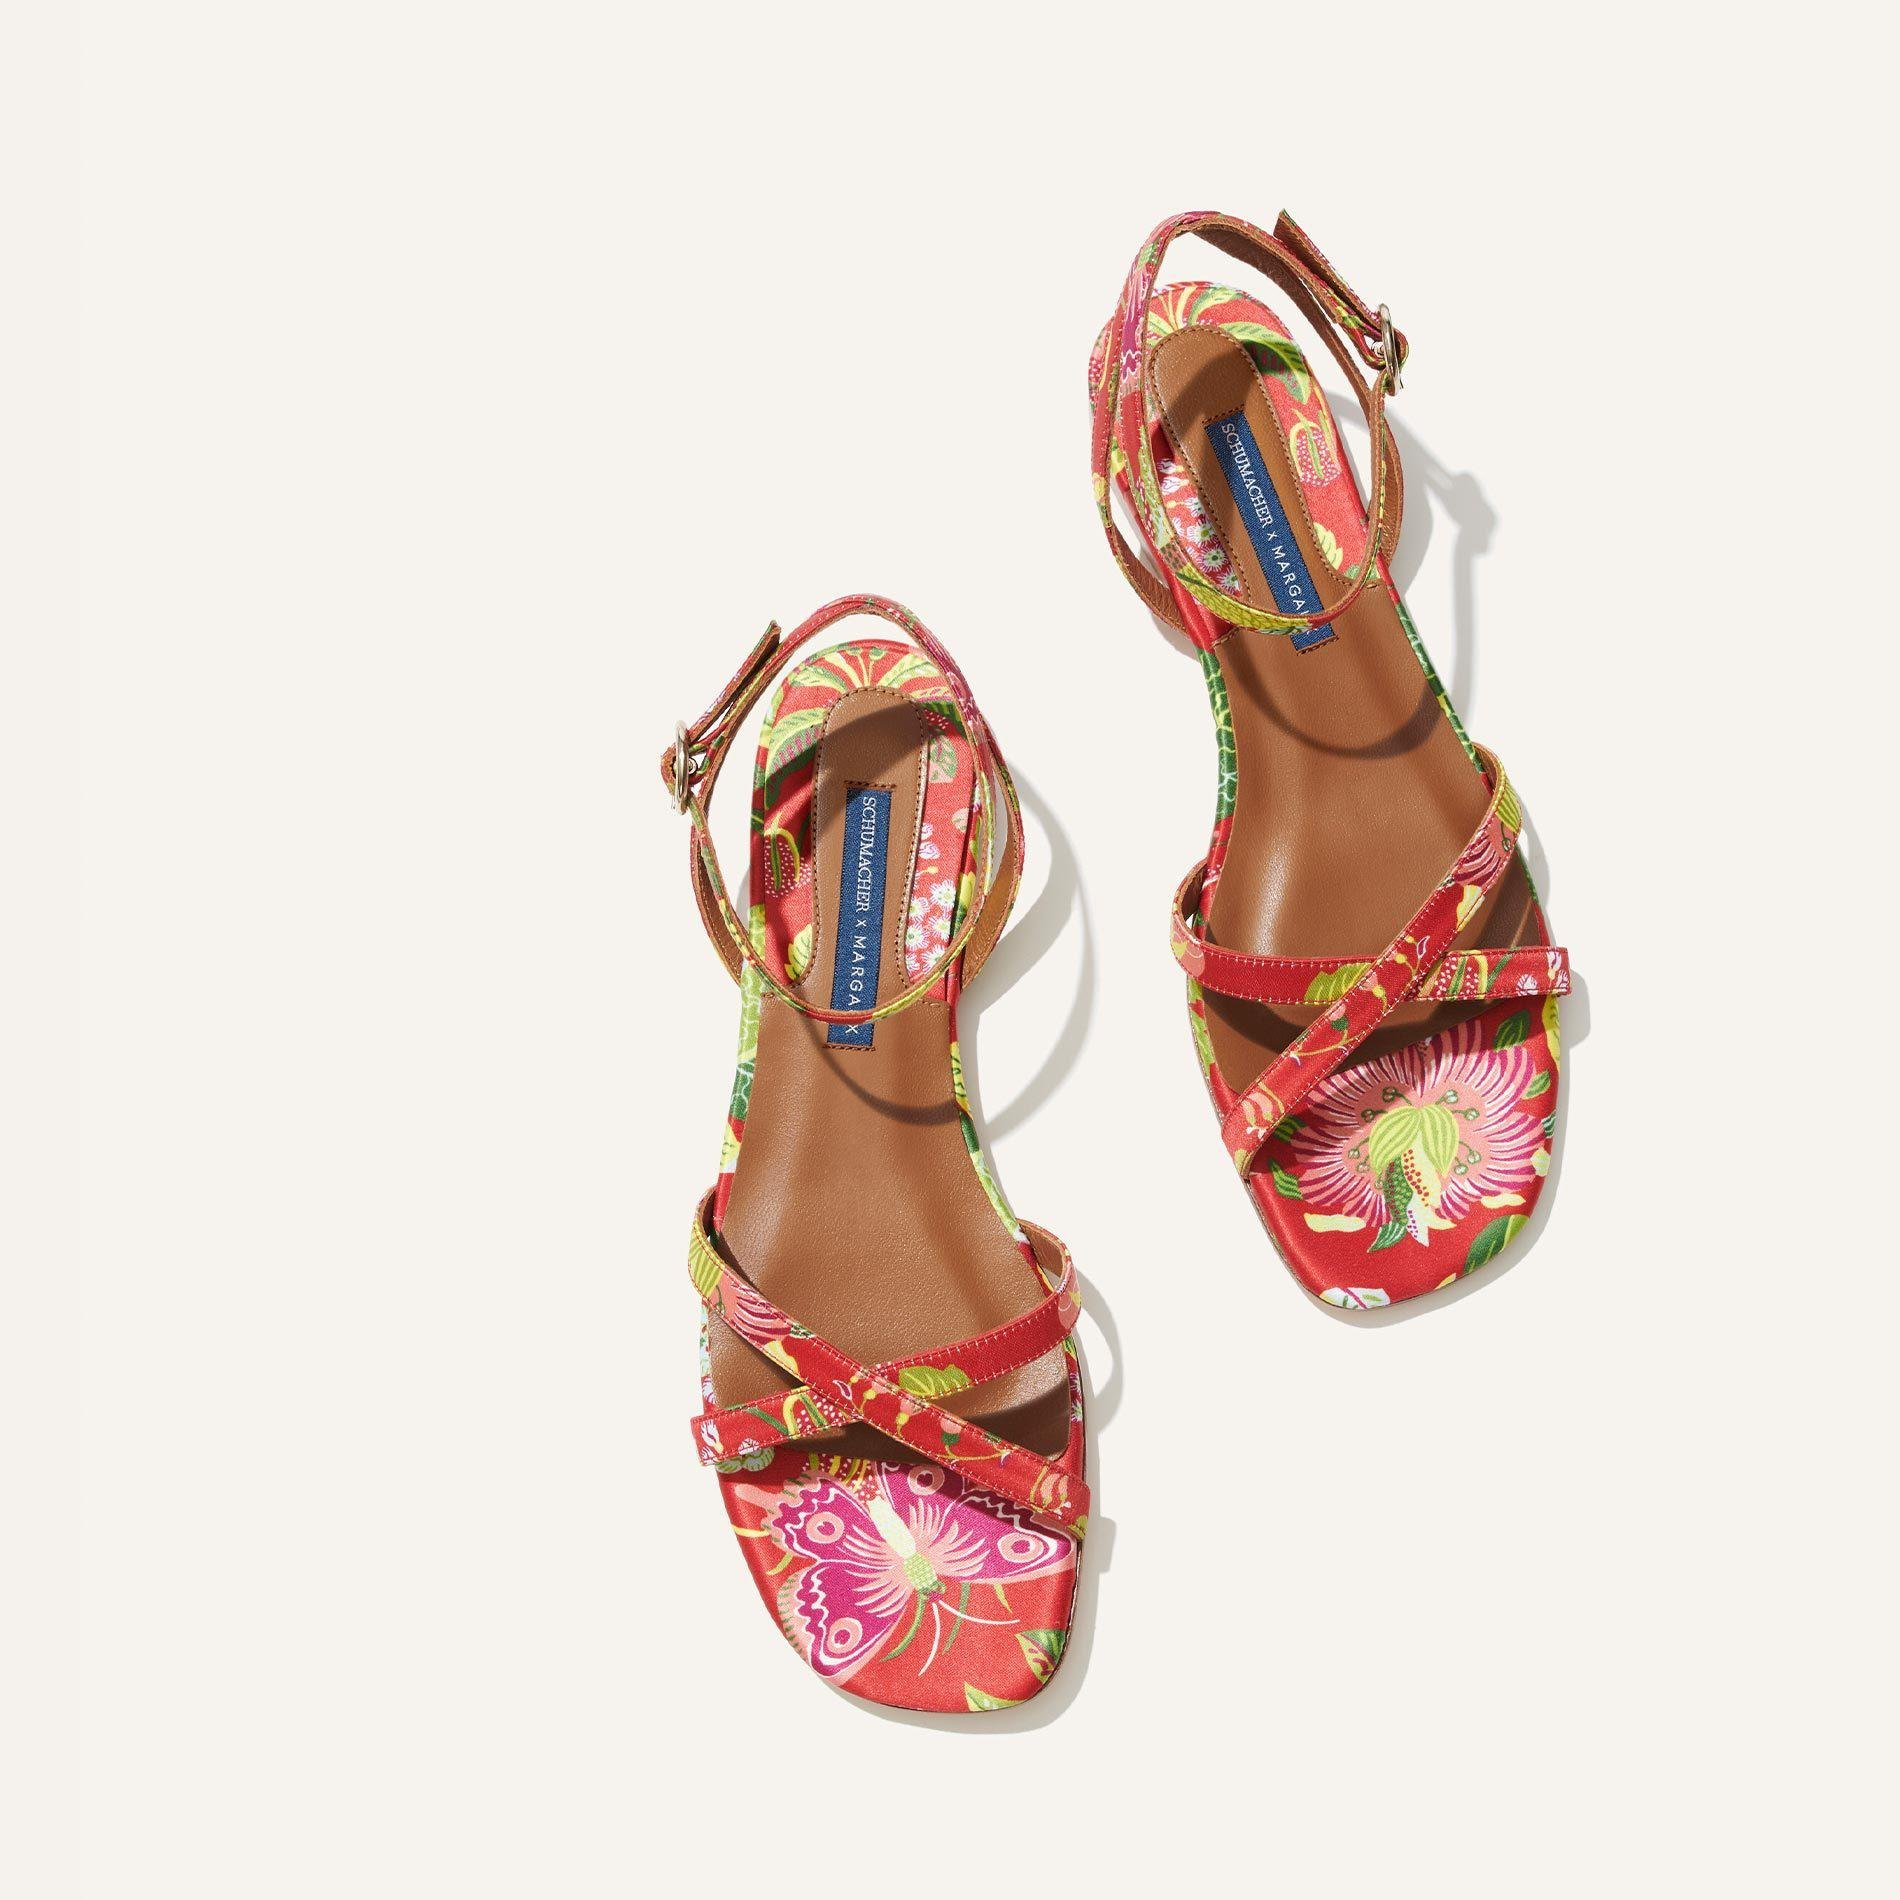 Schumacher x Margaux - The Flat Sandal in Exotic Butterfly 2